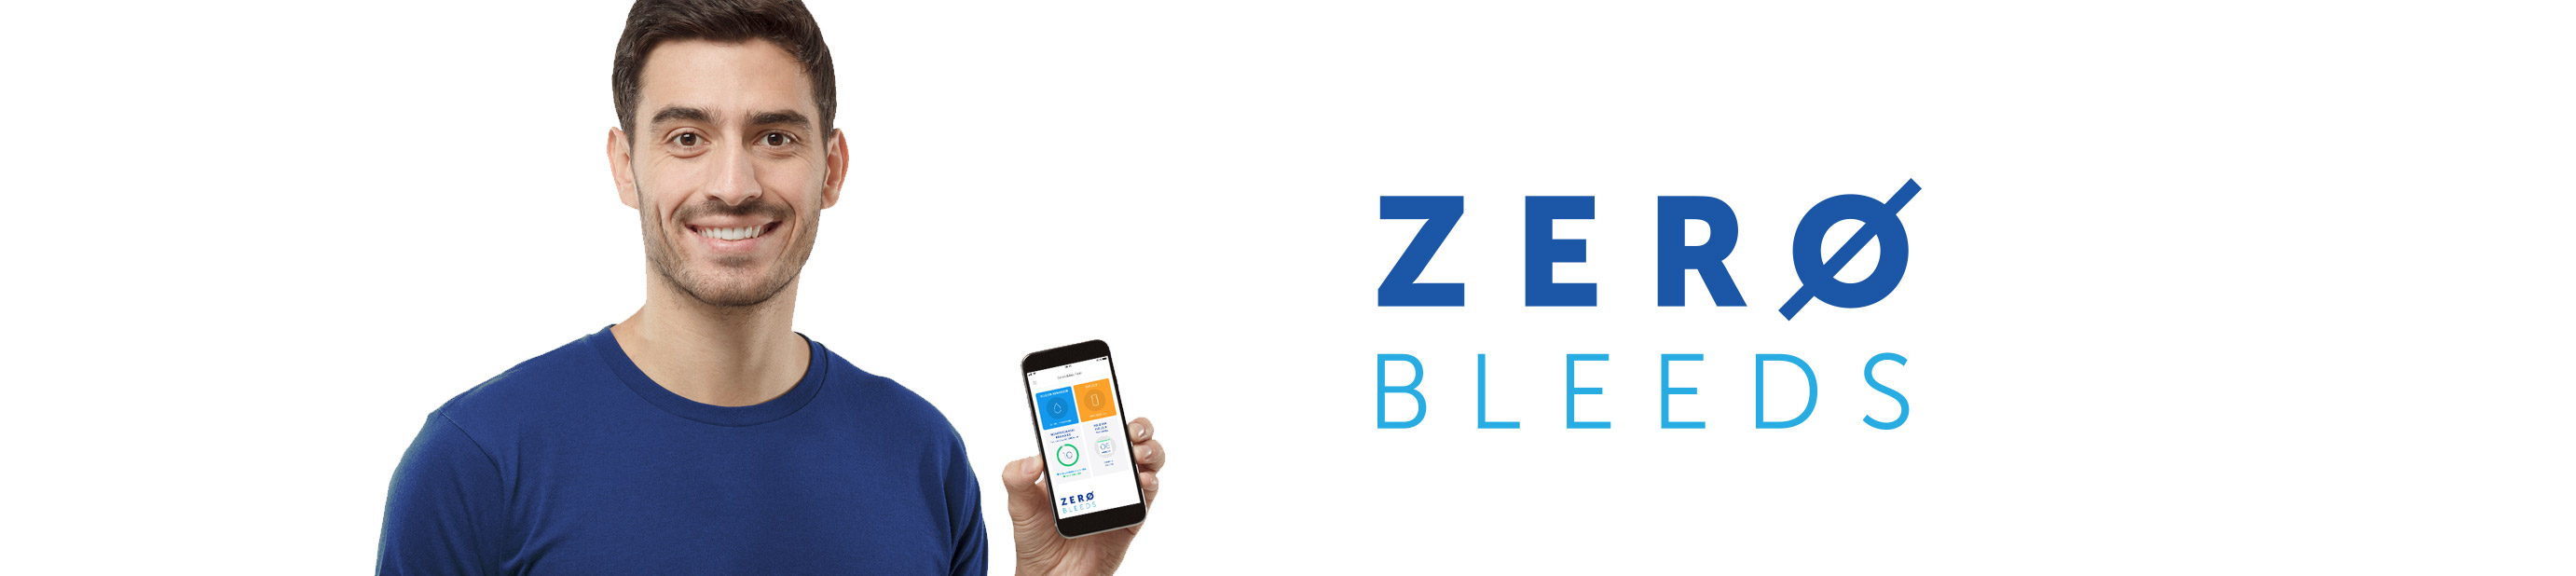 Welcome to Zero Bleeds